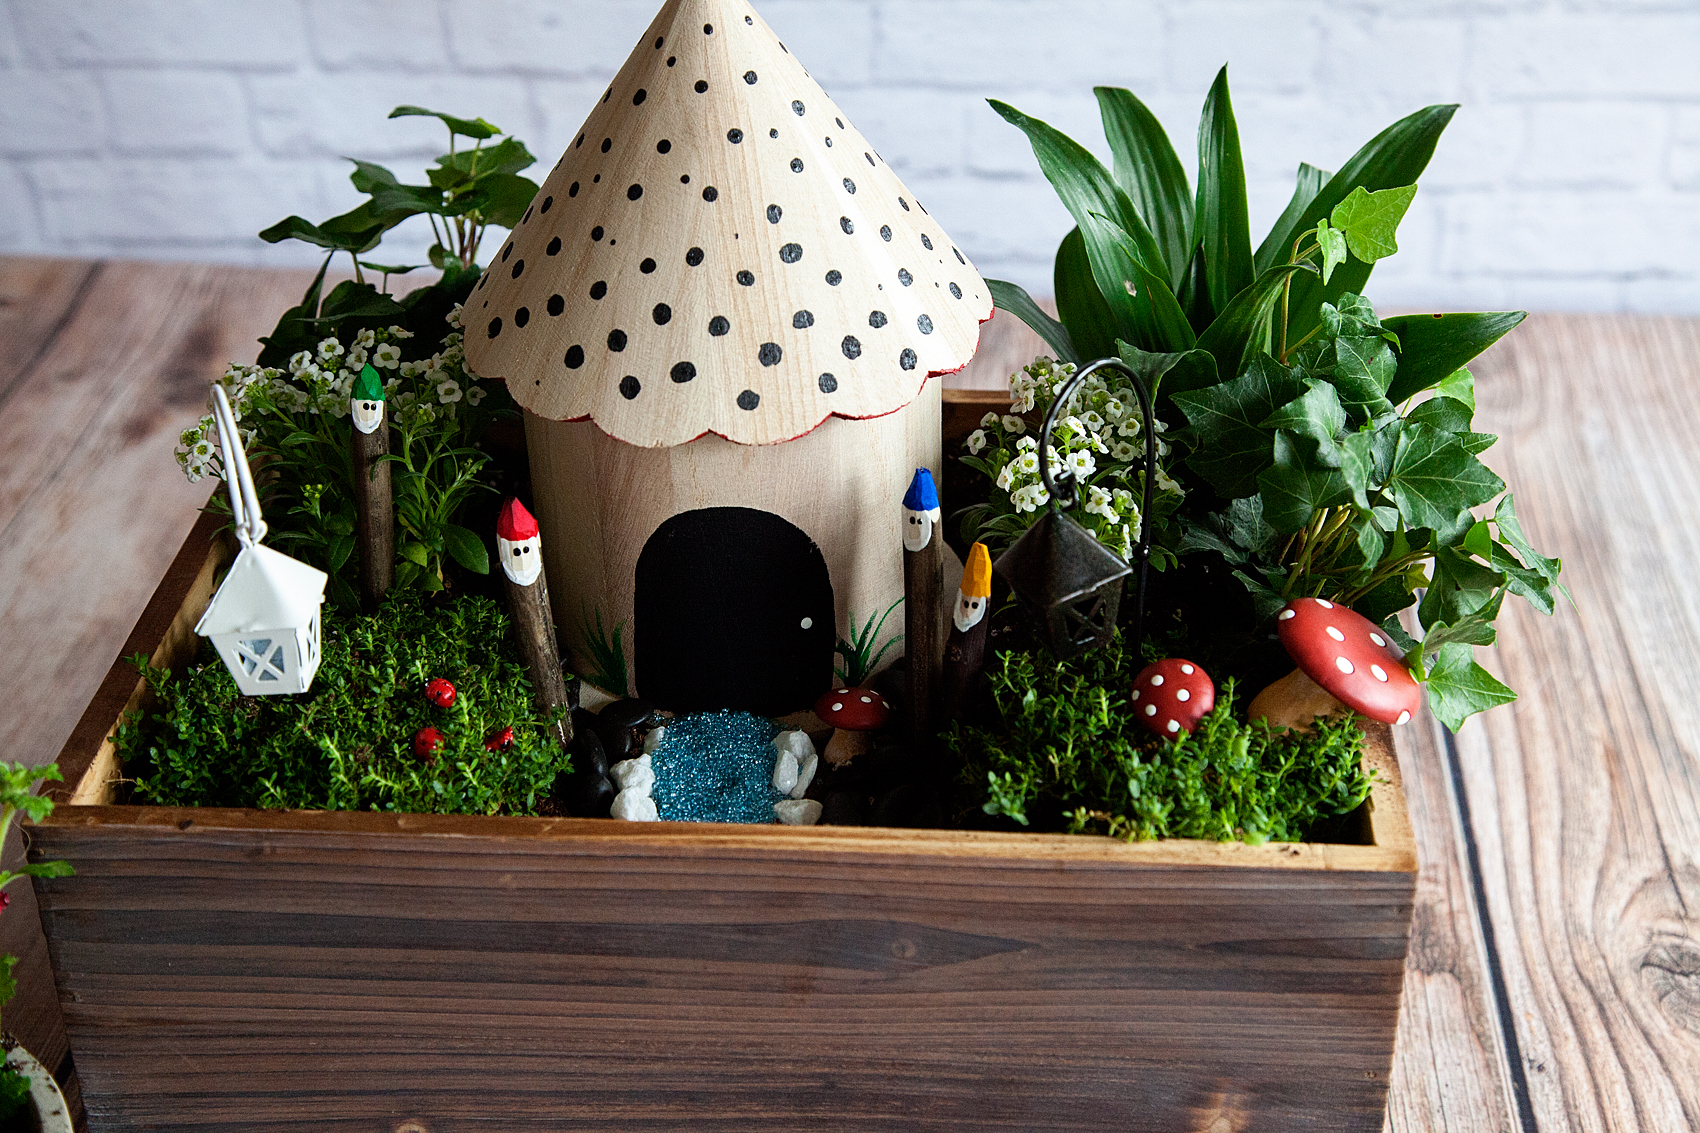 Gnome In Garden: Family Friendly Gnome Garden